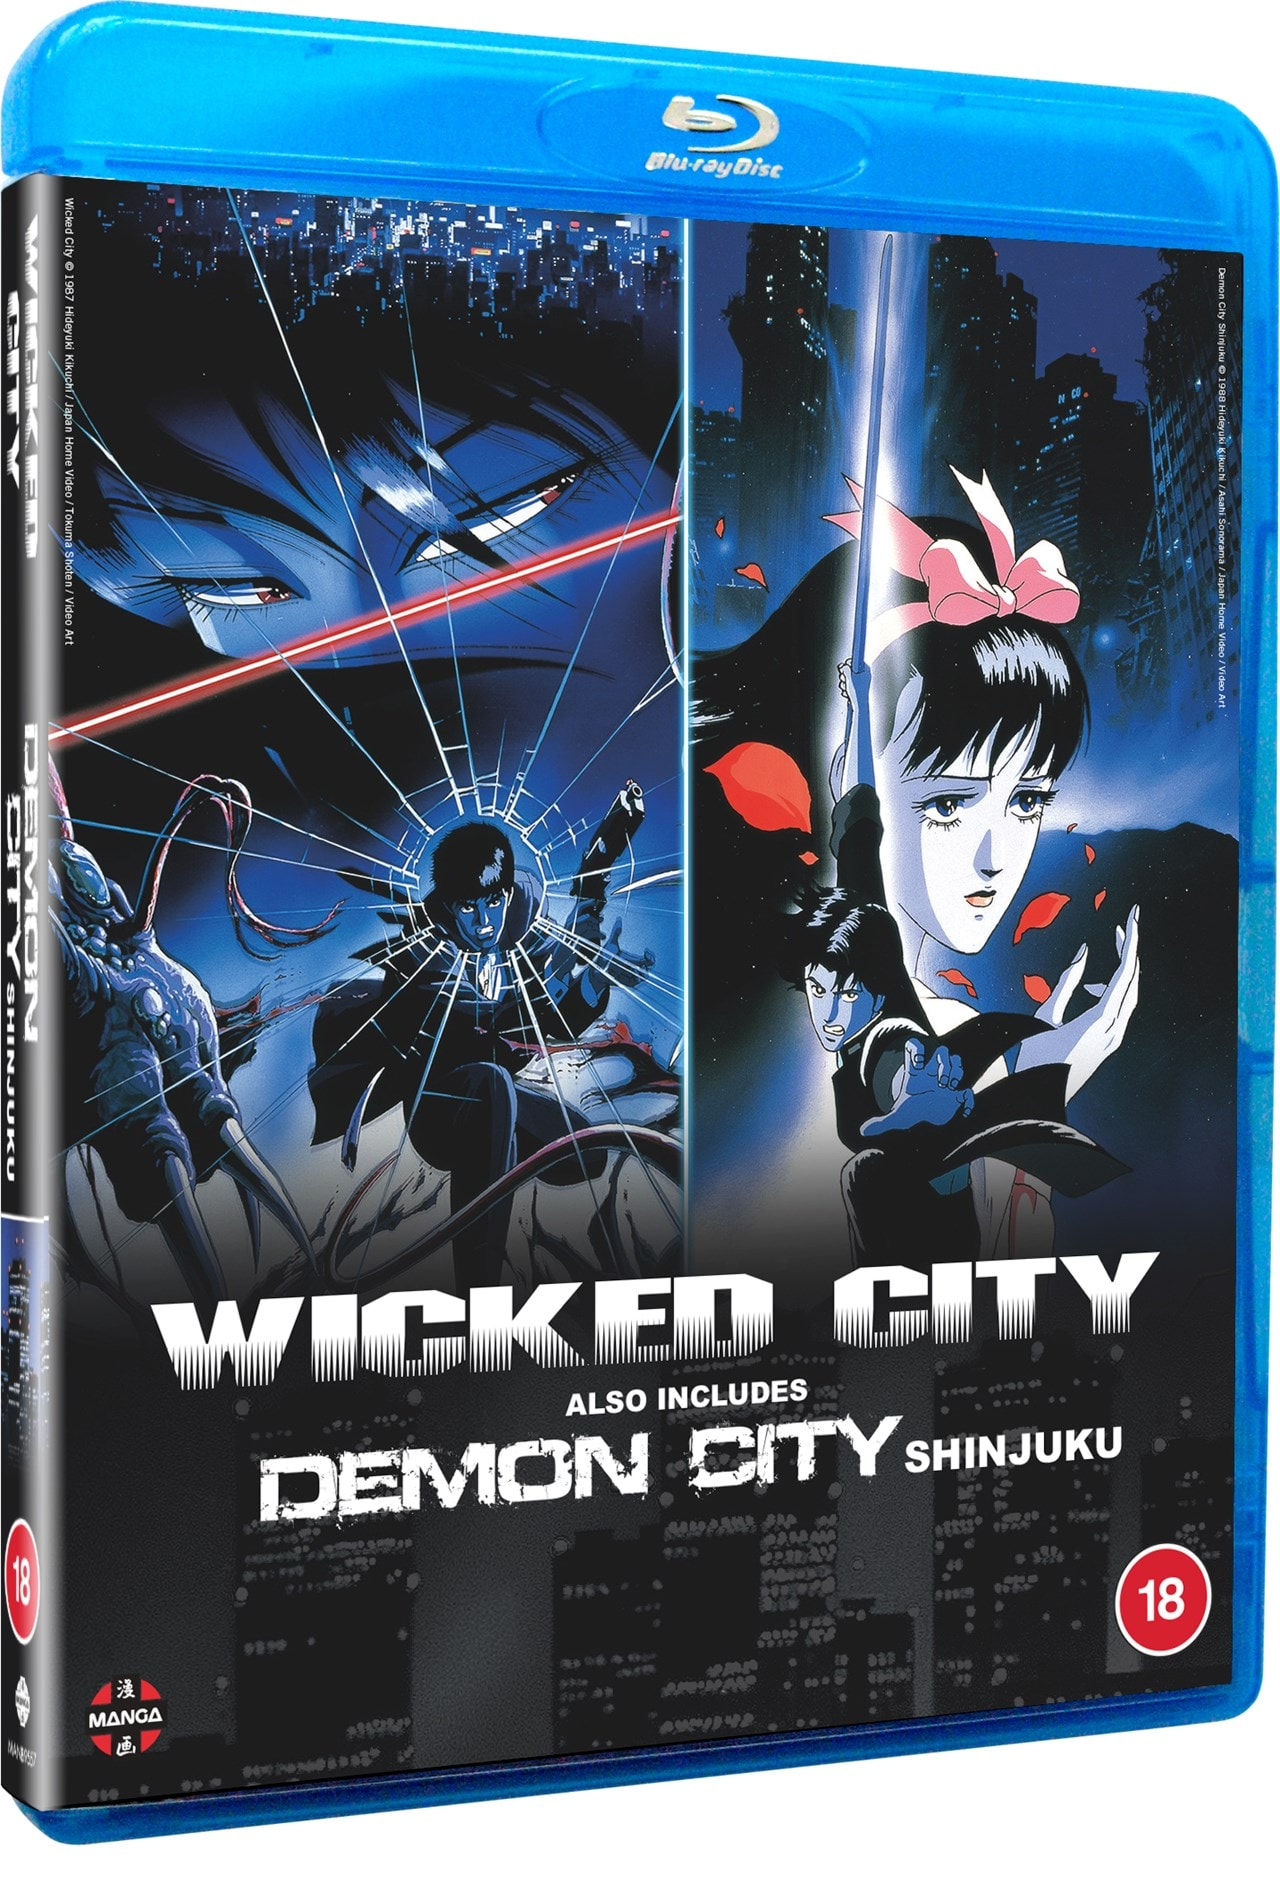 Wicked City/Demon City Shinjuku - 2